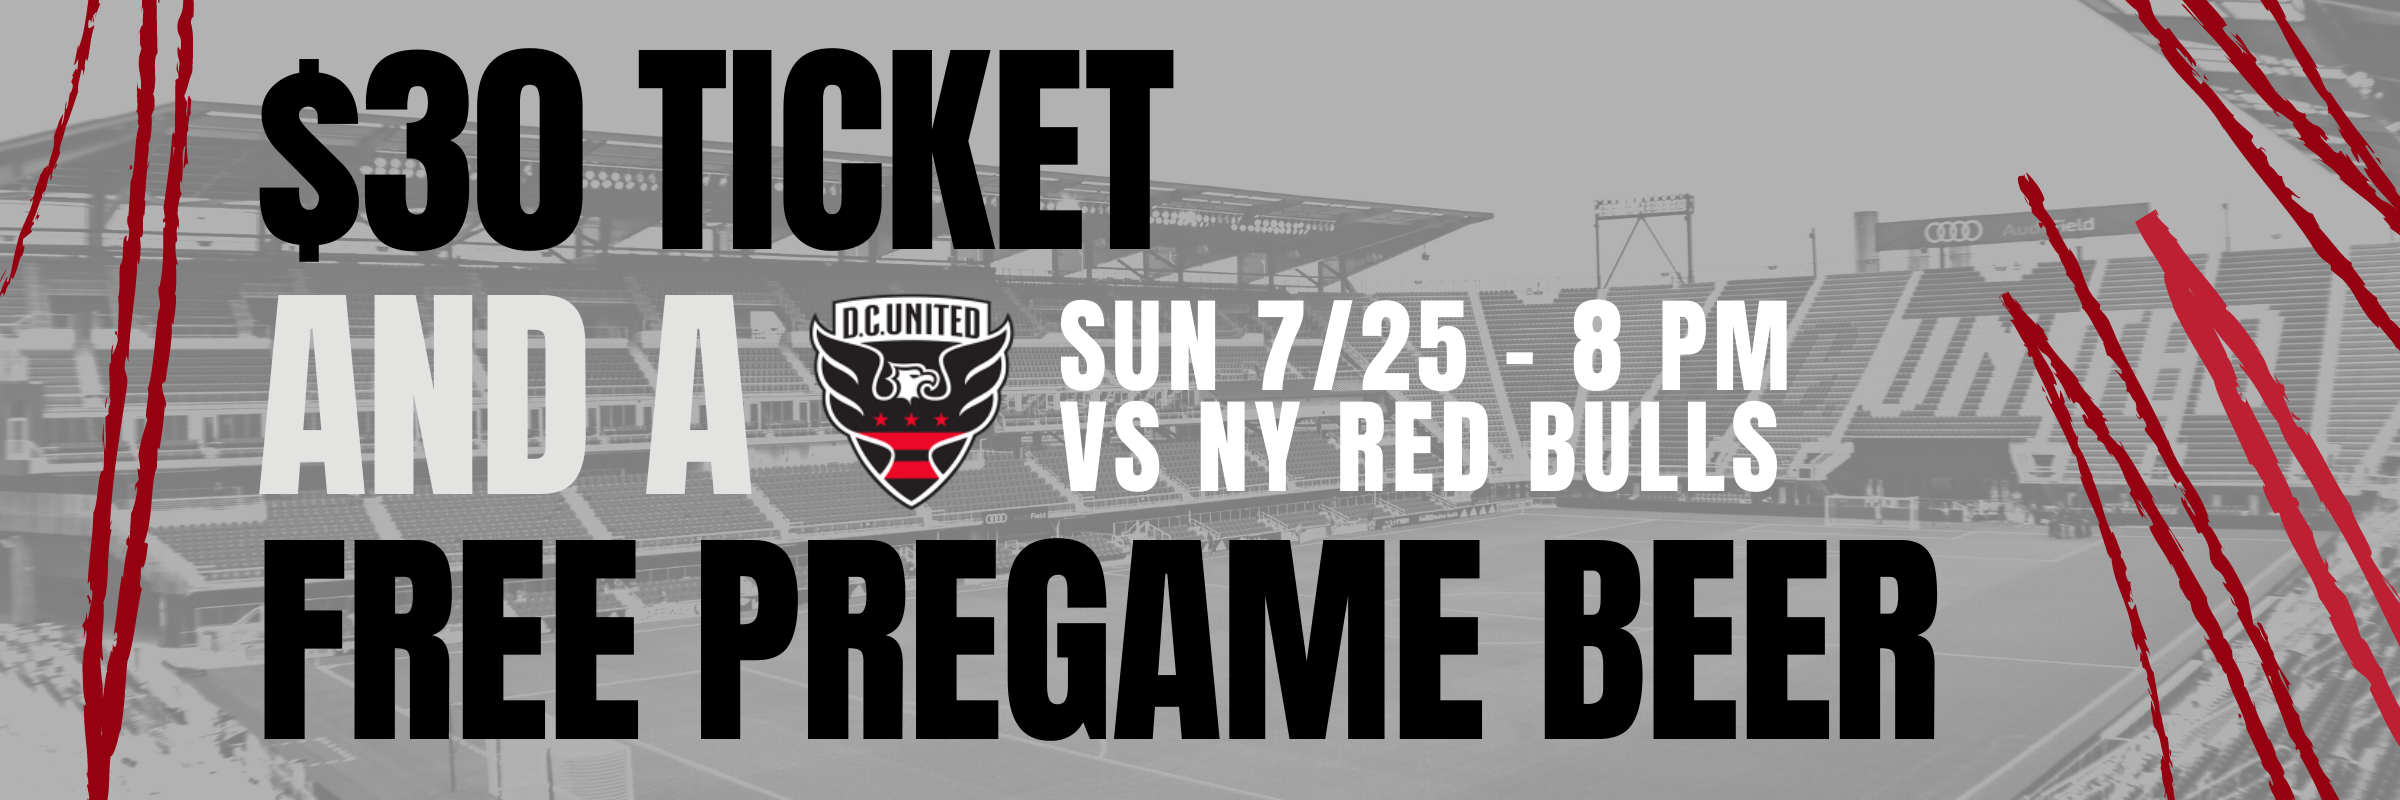 7/25 – $30 DC United Ticket + Free Beer from Atlas Brew Works!